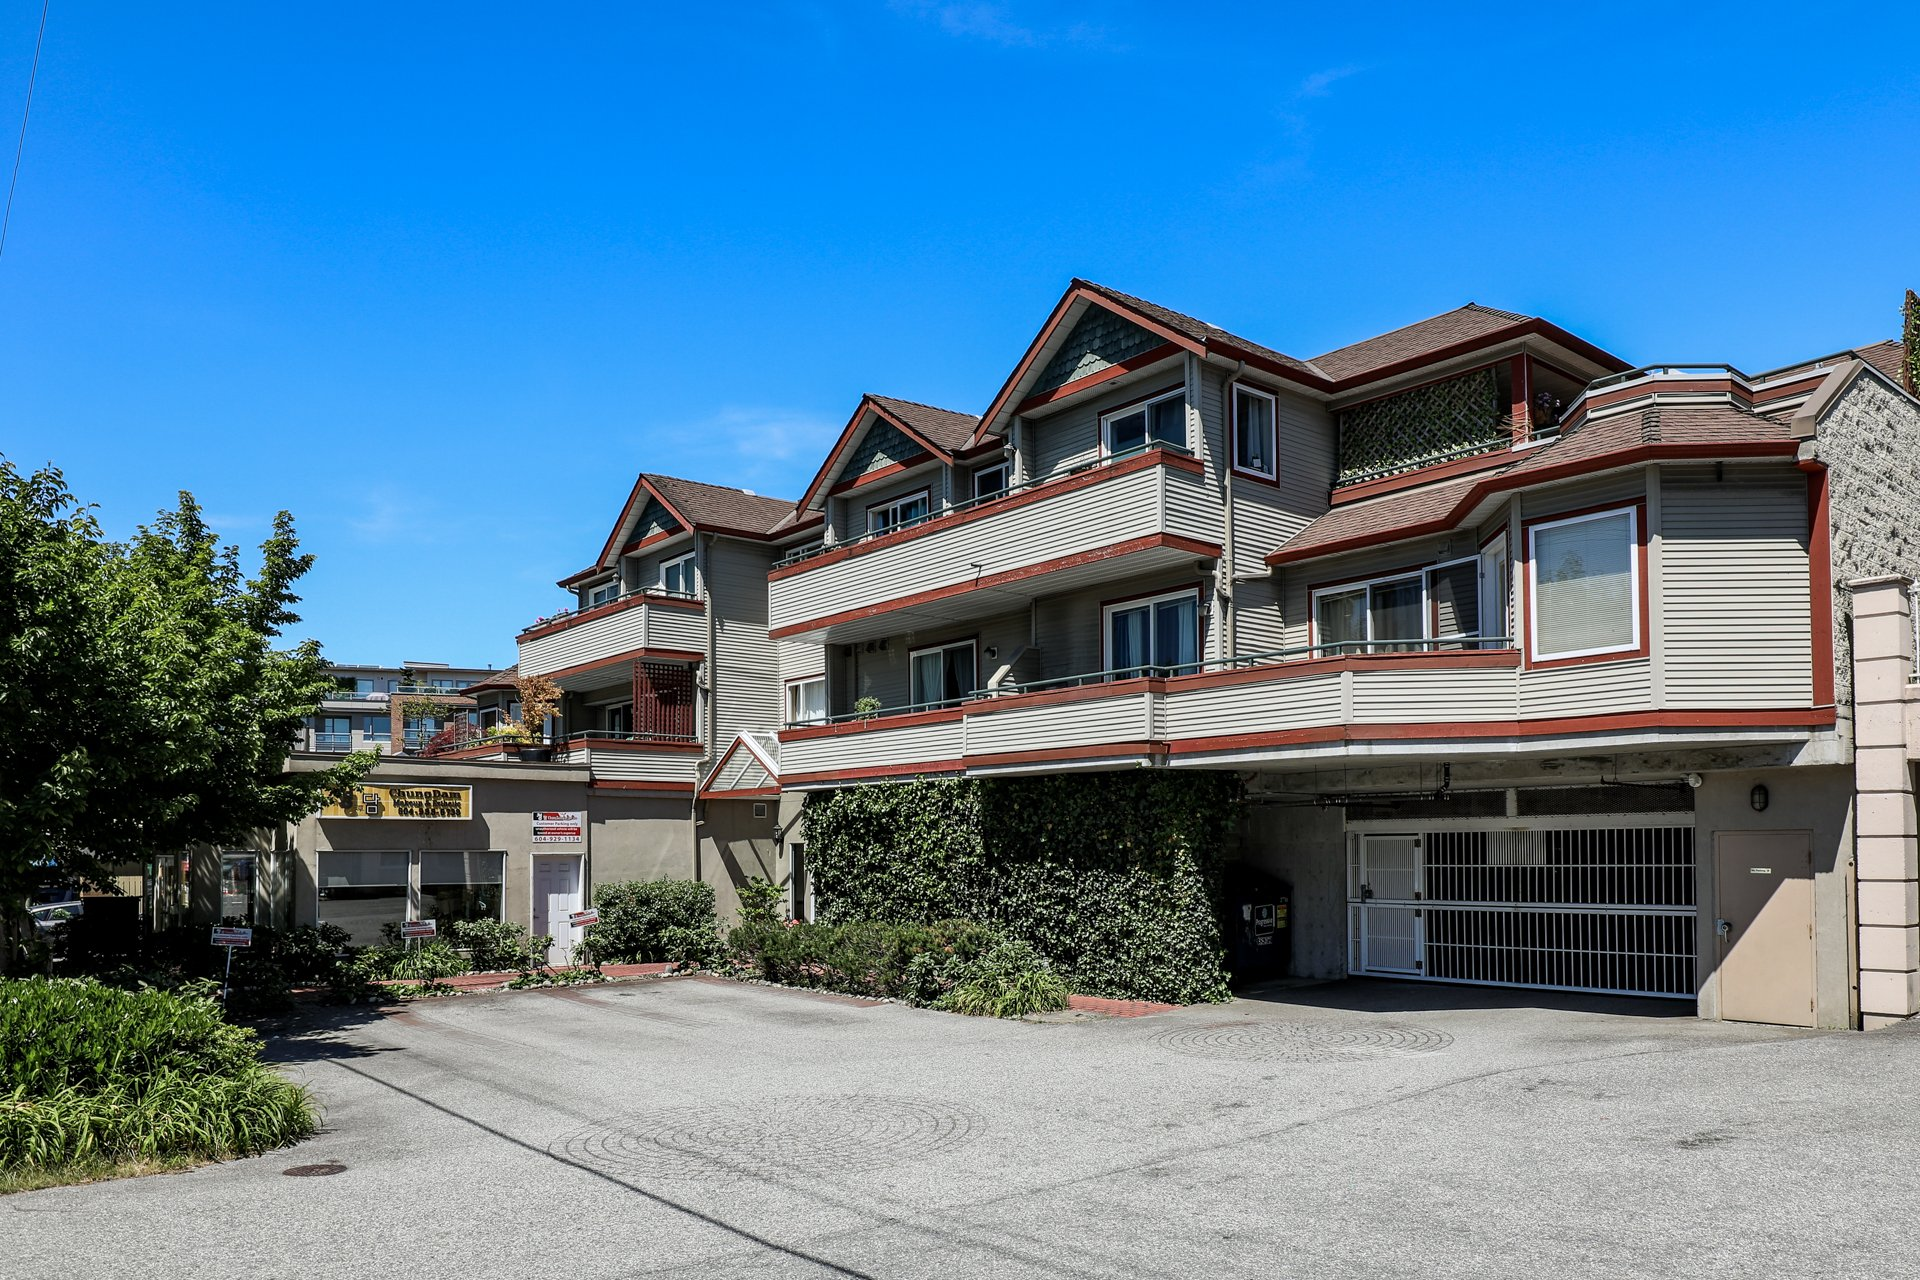 Fell Pointe - 918 W 16th St | Condos For Sale + Listing Alerts